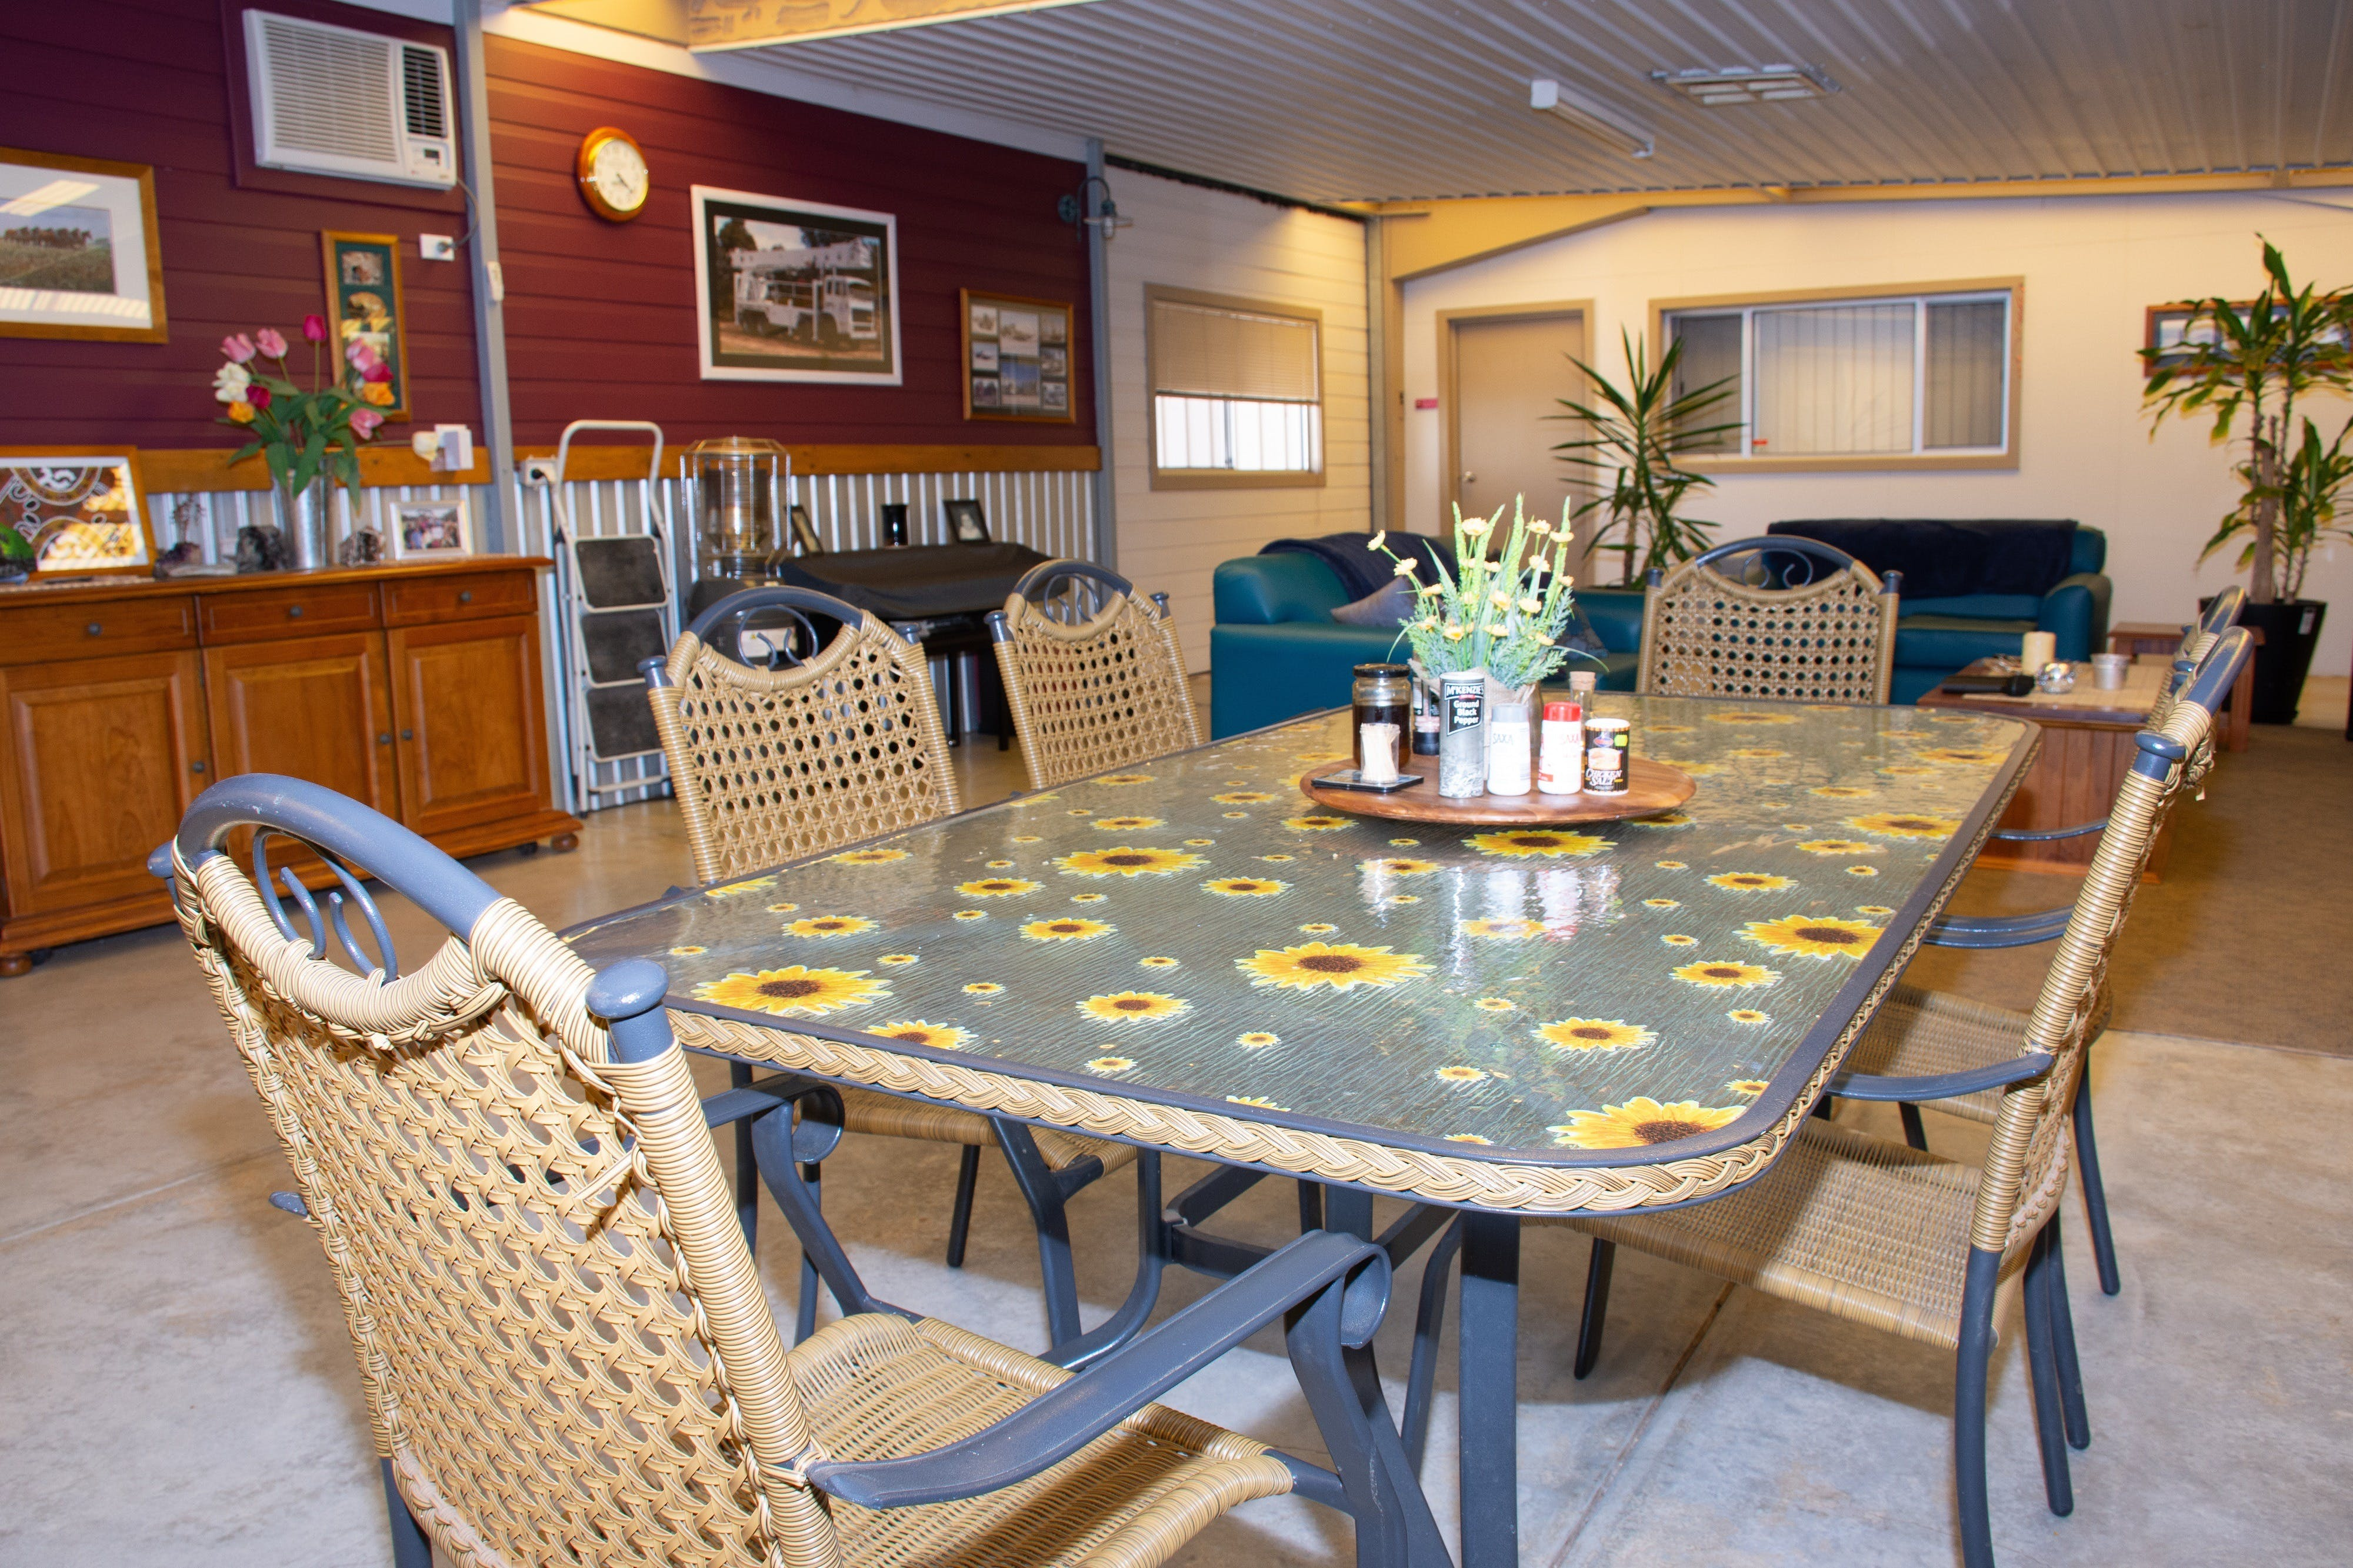 Chrissie's Dongara - Tweed Heads Accommodation